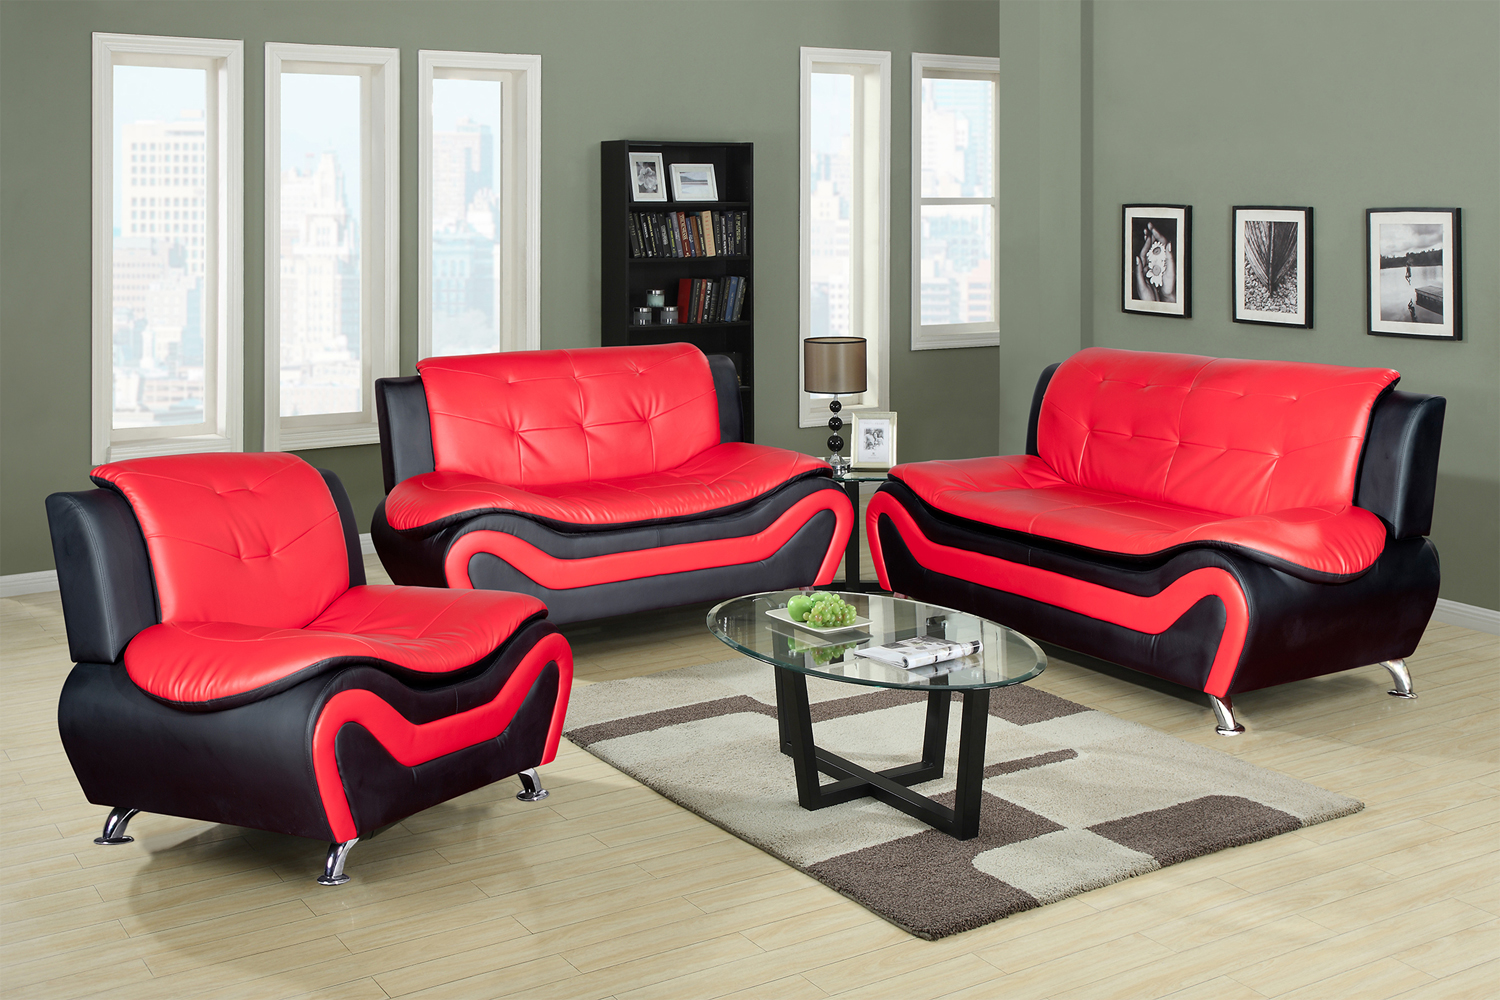 Contemporary Living Set 3 Piece Faux Leather Contemporary Living Room Sofa Love Seat Chair Set Black Red